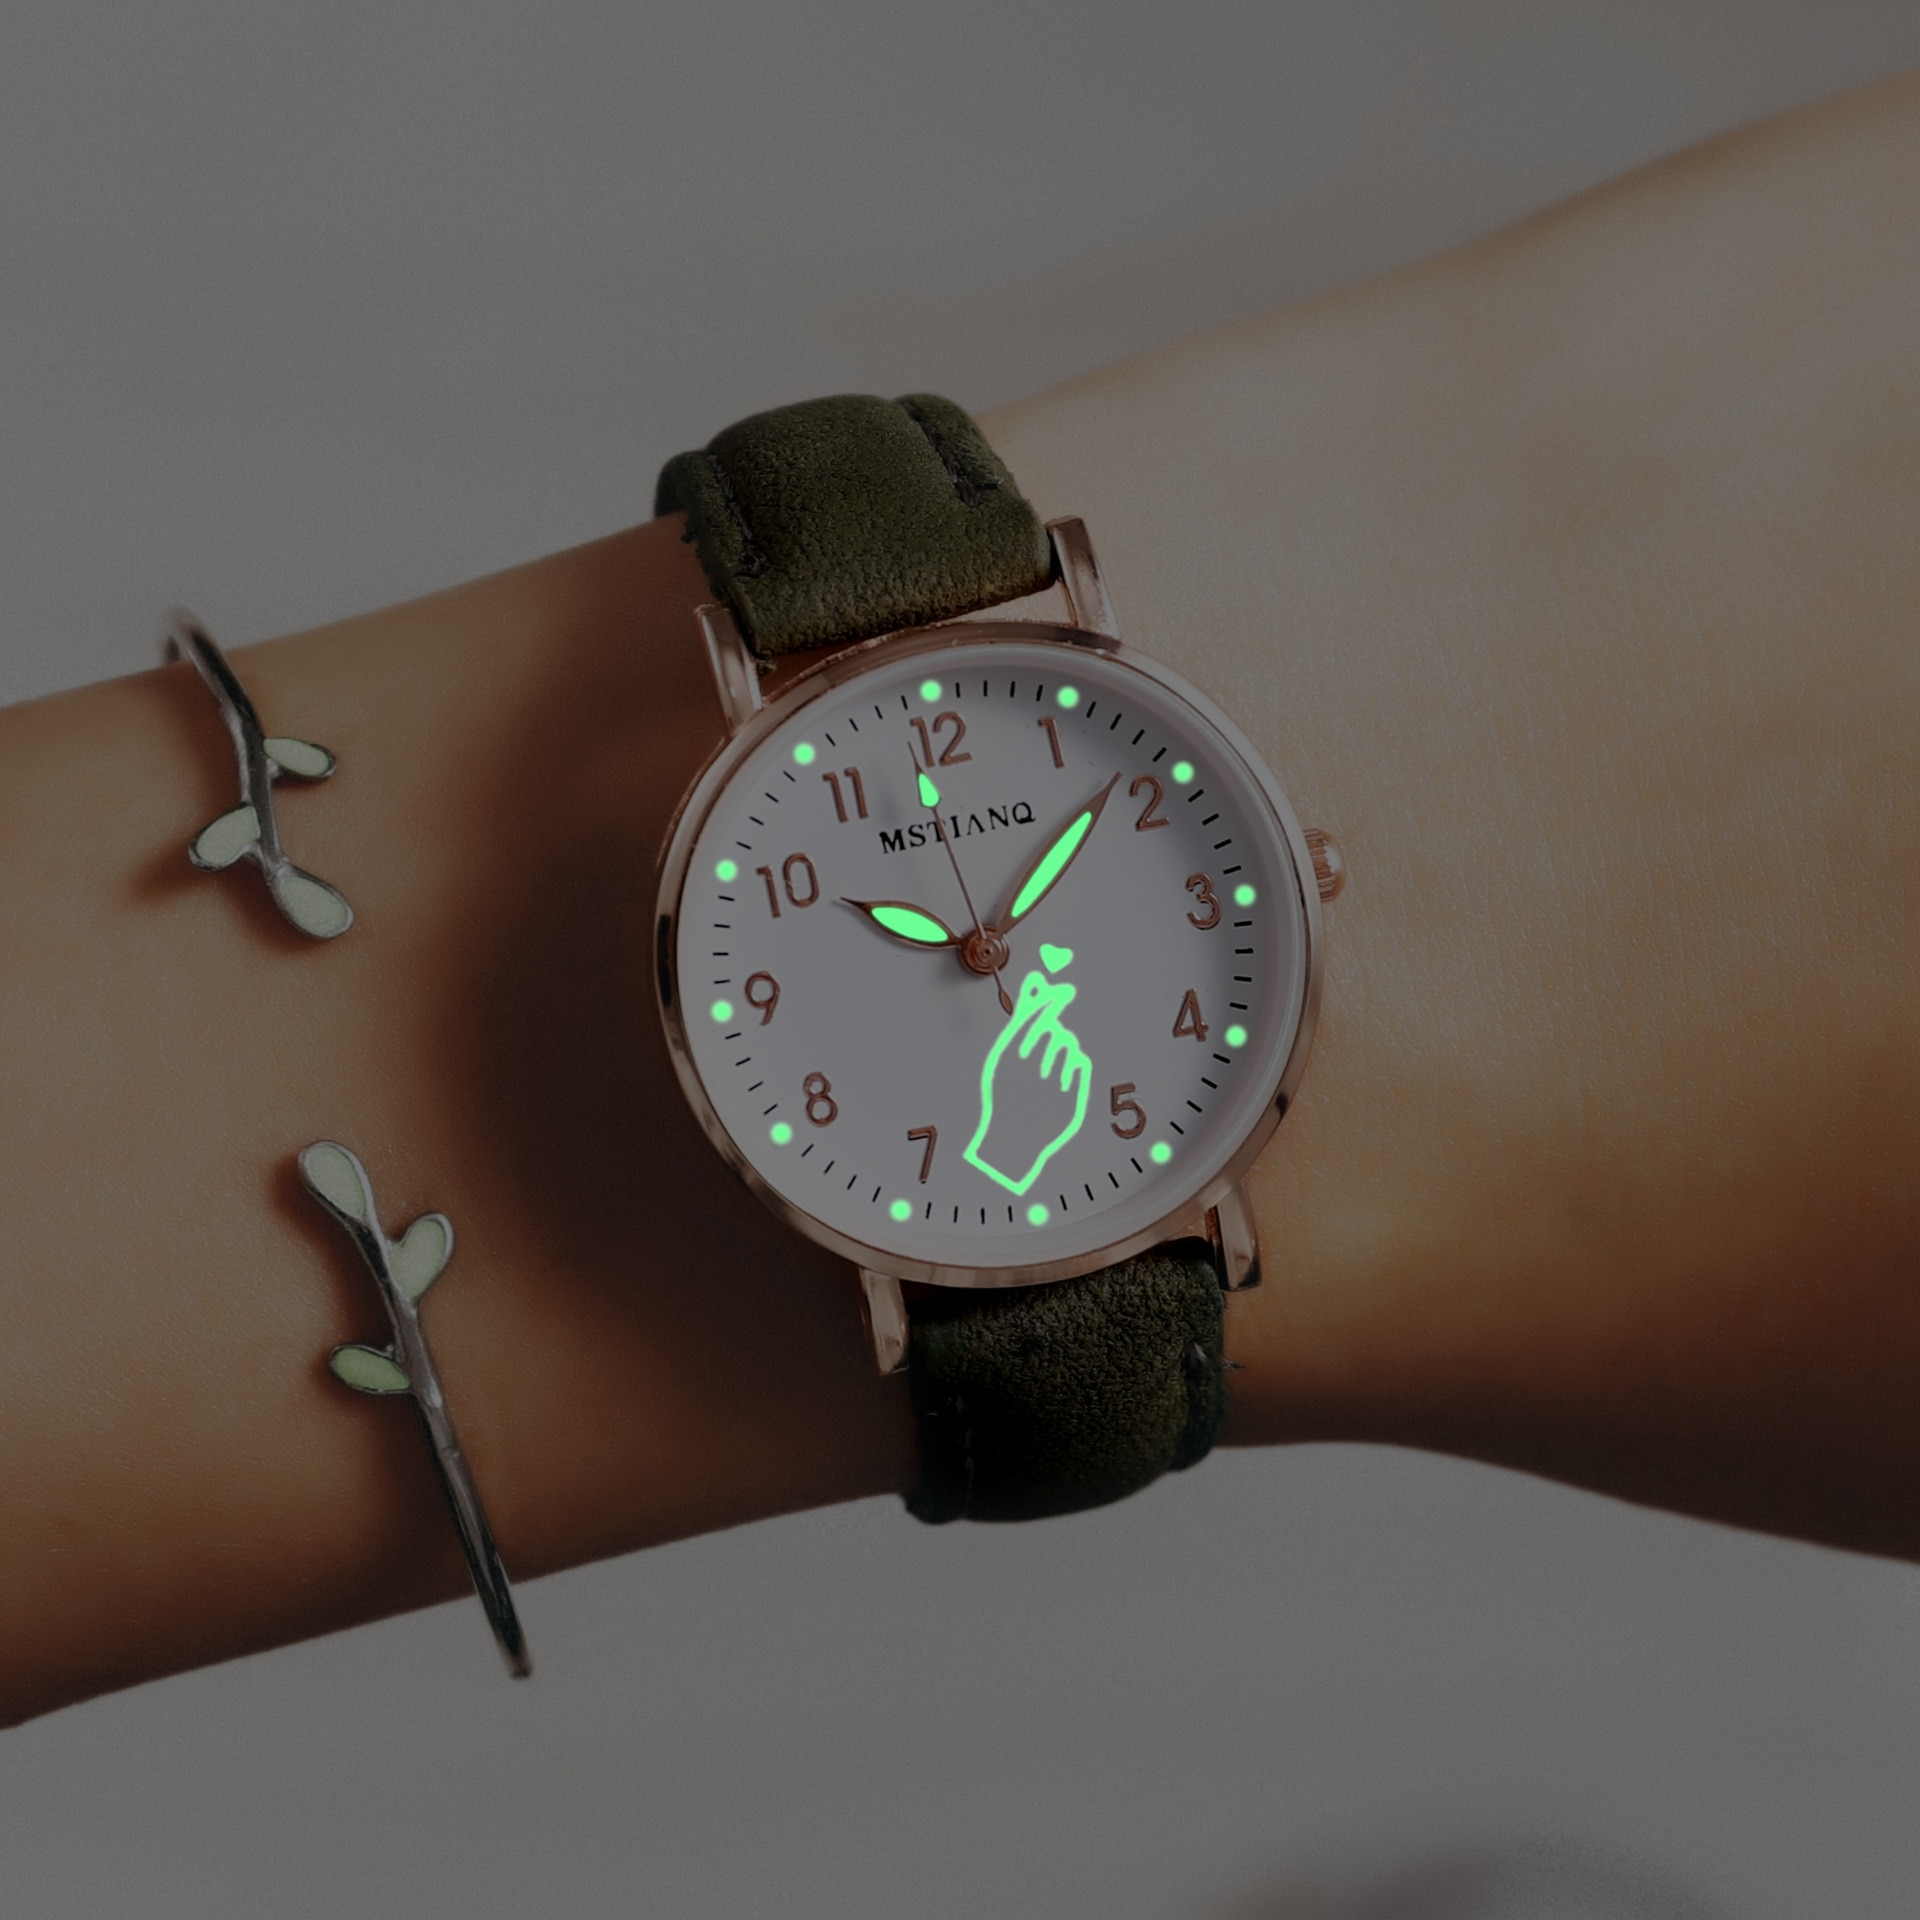 TOP Simple Ladies Wrist Watches Luminous Women Watches Casual Leather Strap Quartz Watch Clock Montre Femme Relogio Feminino fashion simple ladies wrist watches luminous women watches casual leather strap quartz watch clock montre femme luxury gift